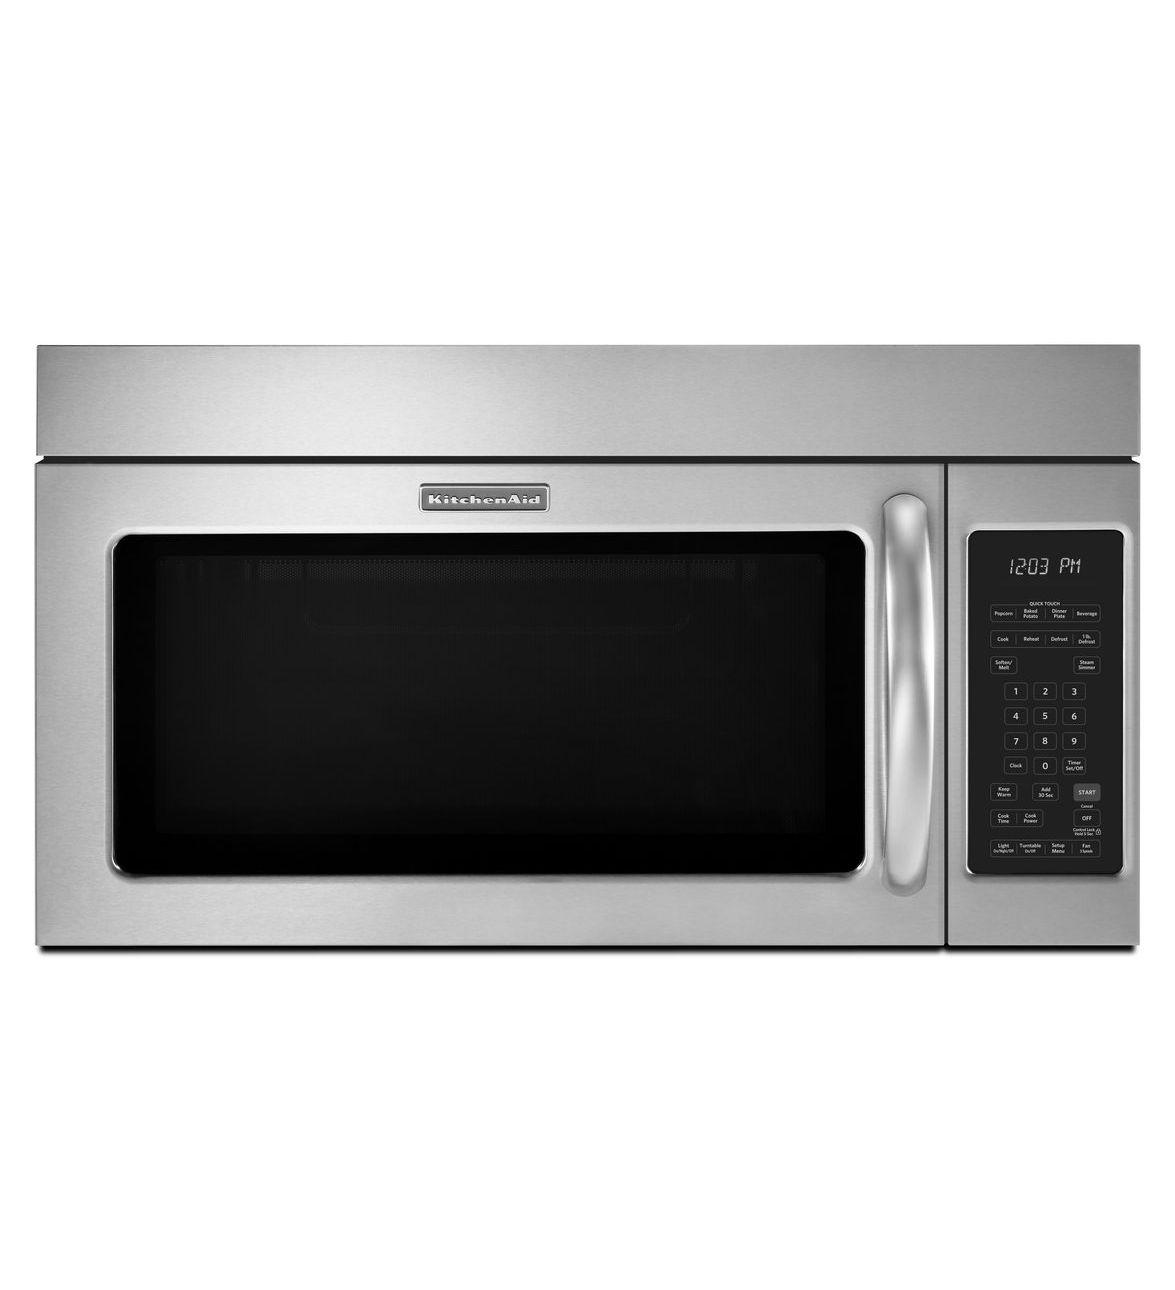 Khms2040bss Kitchenaid Khms2040bss Over The Range